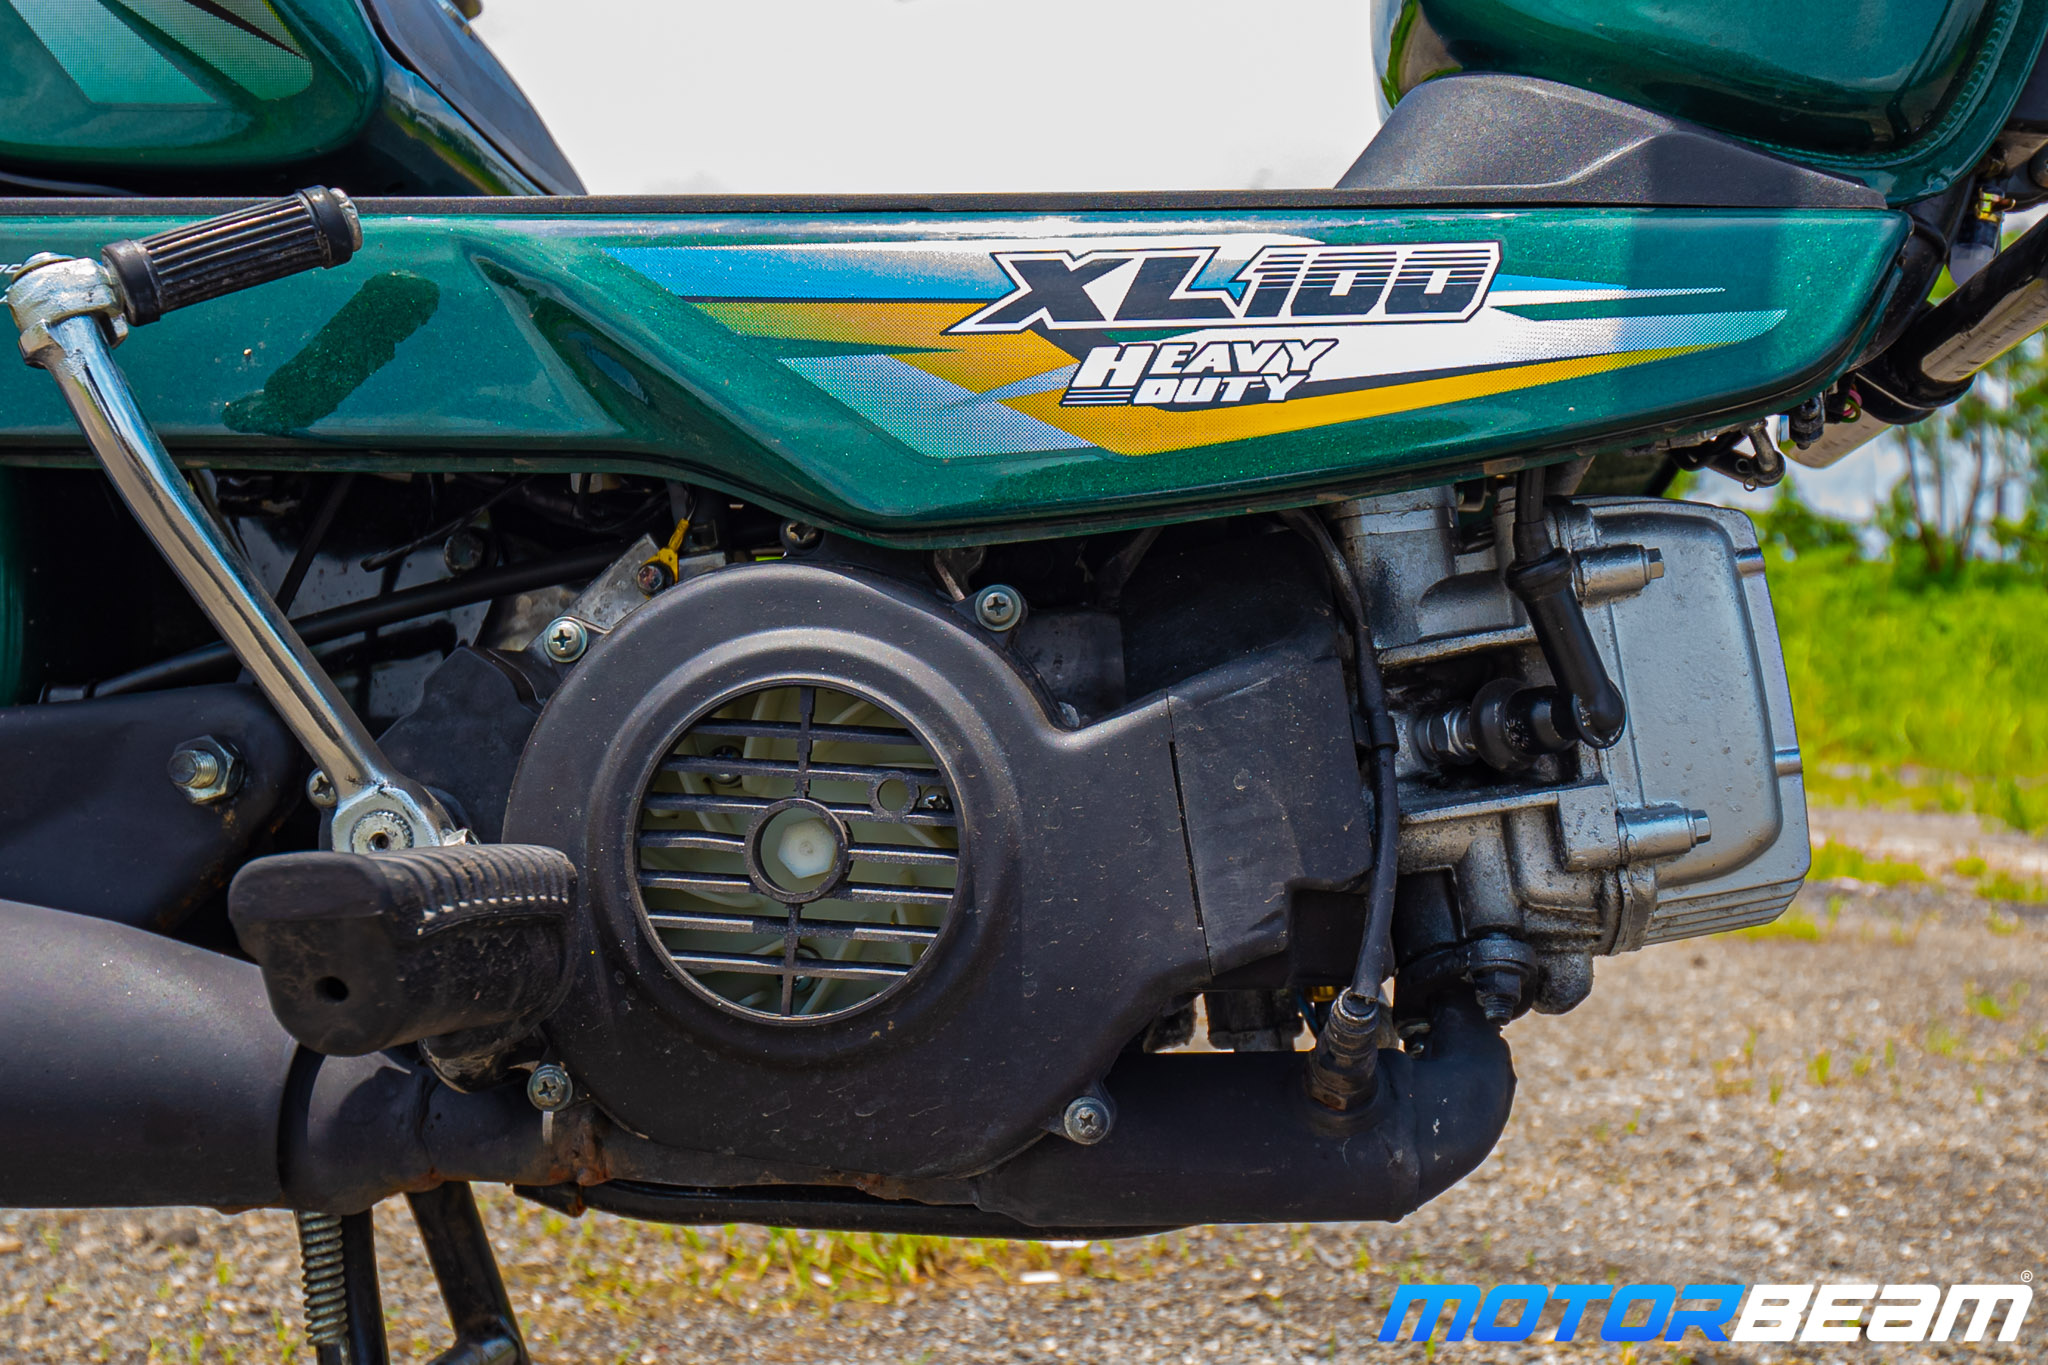 TVS XL 100 Heavy Duty Review 9